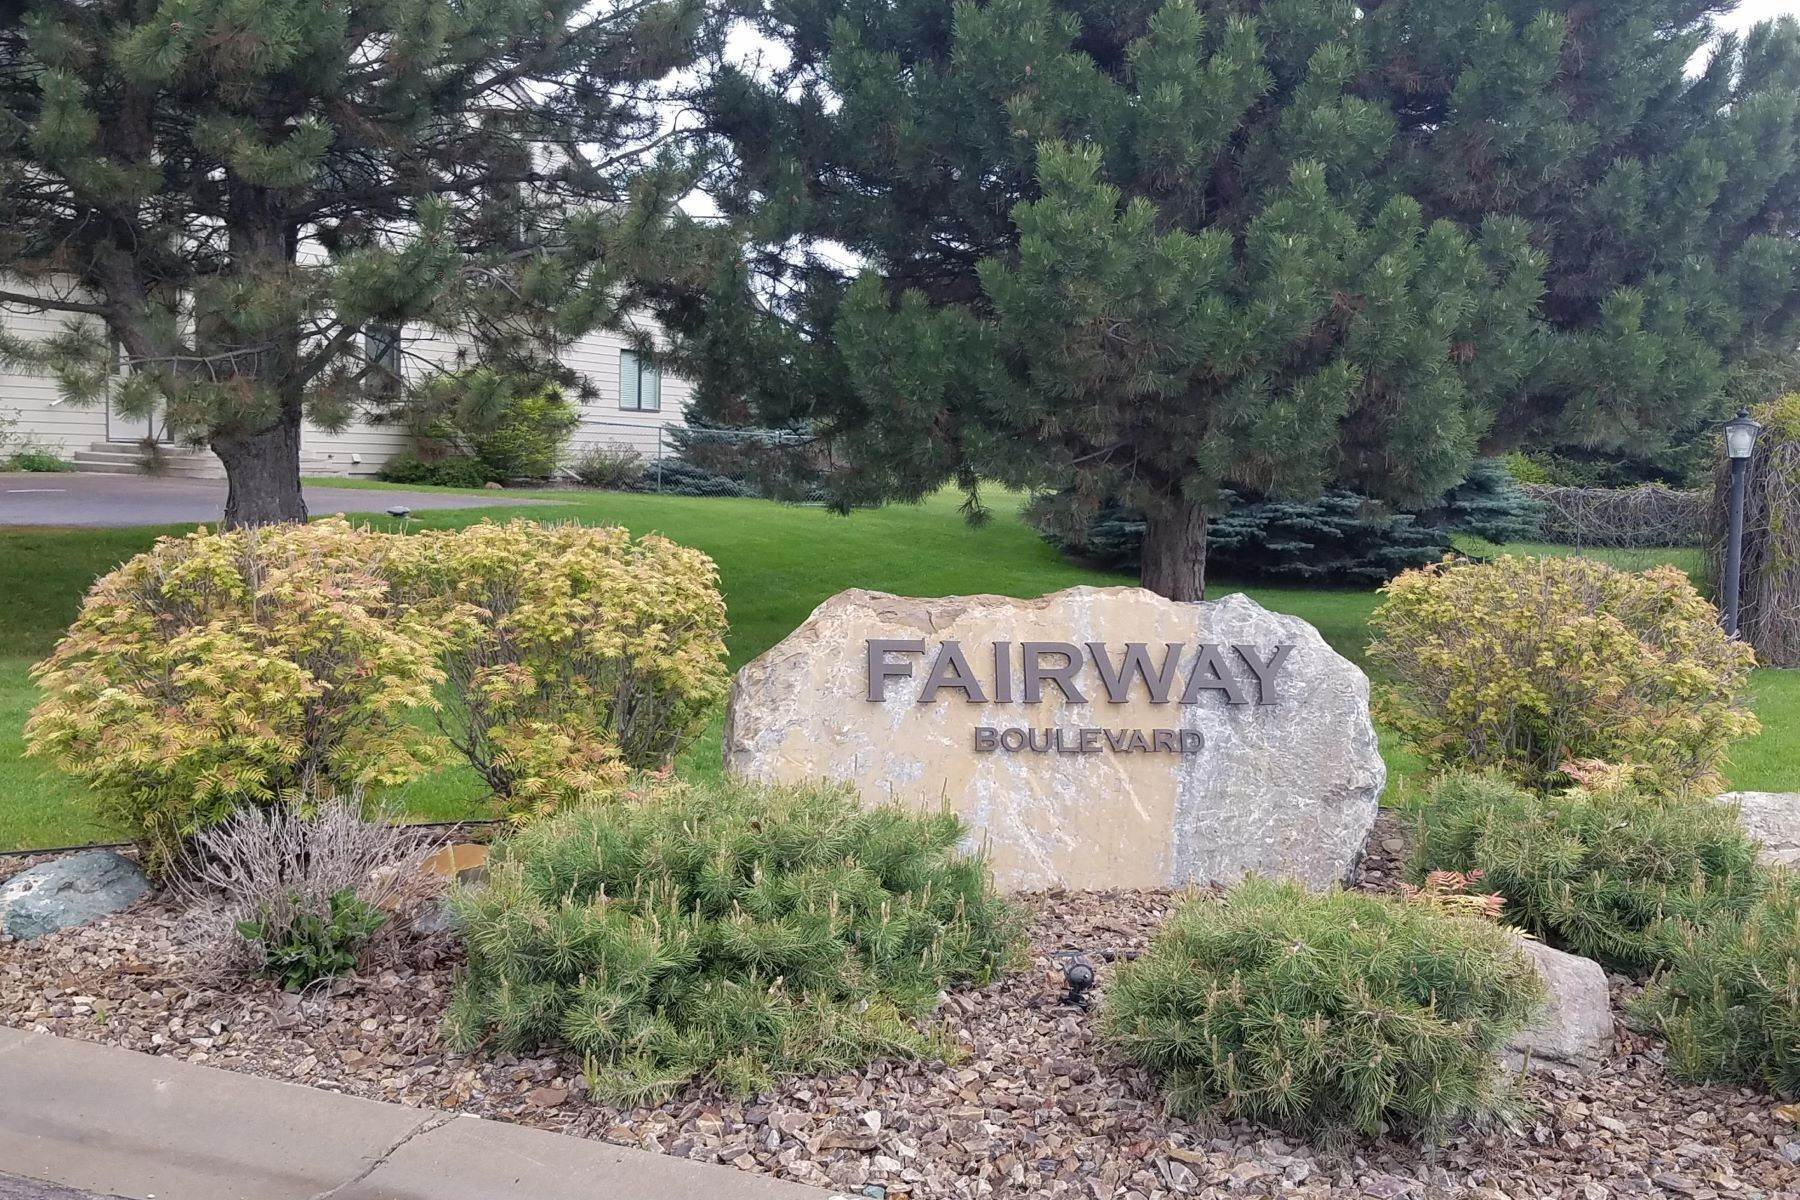 Land for Sale at 177 & 178 Fairway Boulevard Kalispell, Montana 59901 United States